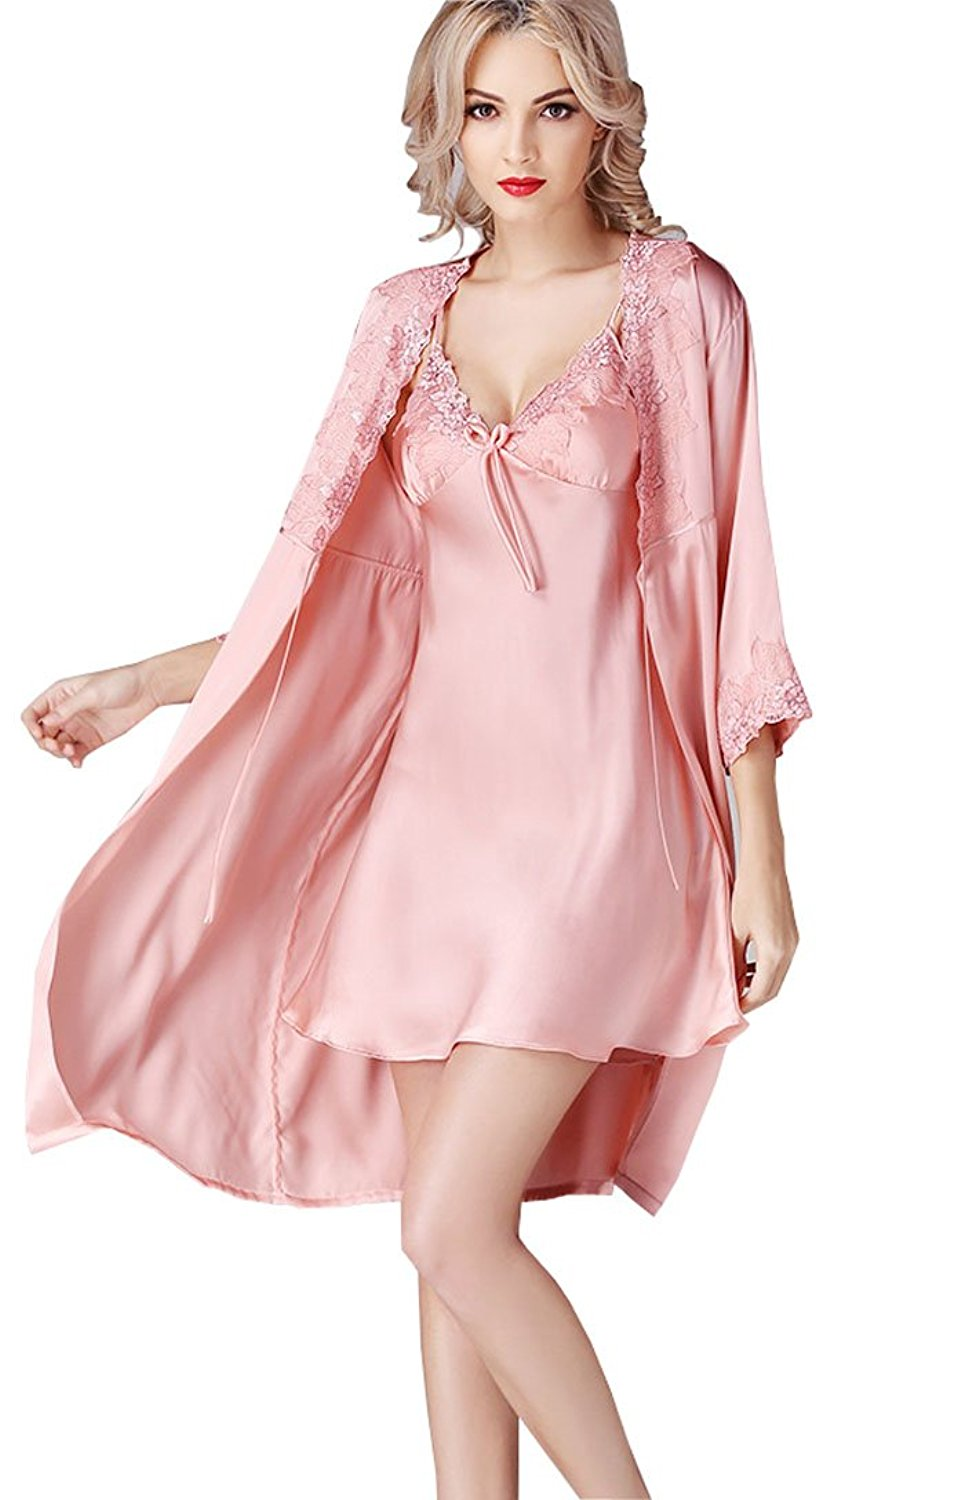 735ba1a194 METWAY Women s Pure Melberry Silk Pajamas 2 Piece Satin Silk Nightgown Silk  Rob Sets. 99.0. Chesslyre Women s Luxury Charmeuse Jacquard ...